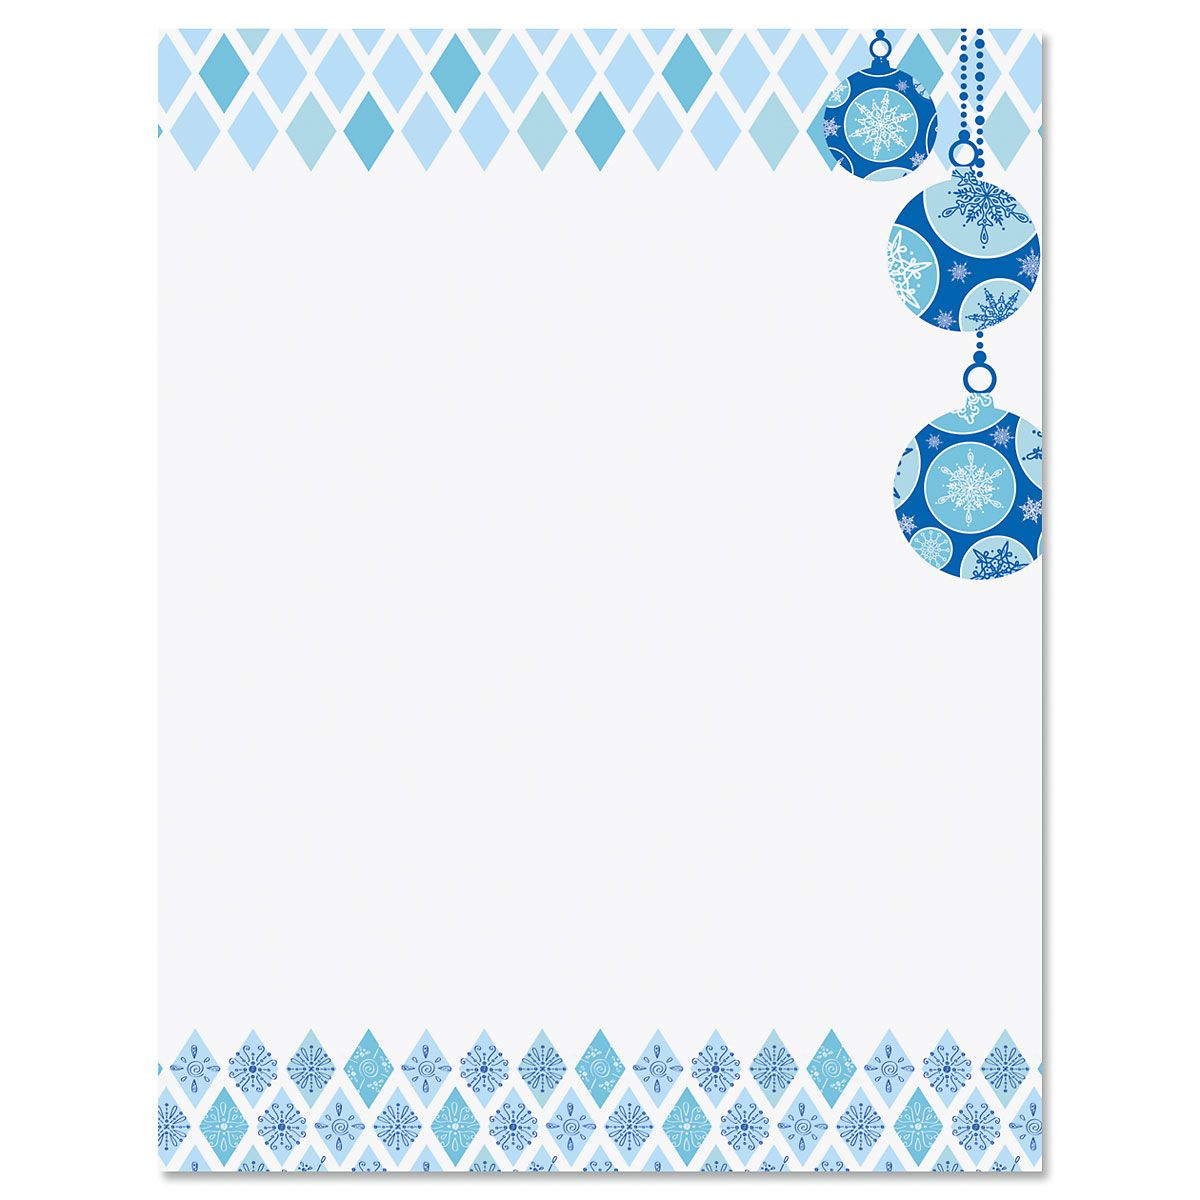 Snowflake Ornaments Christmas Letter Papers